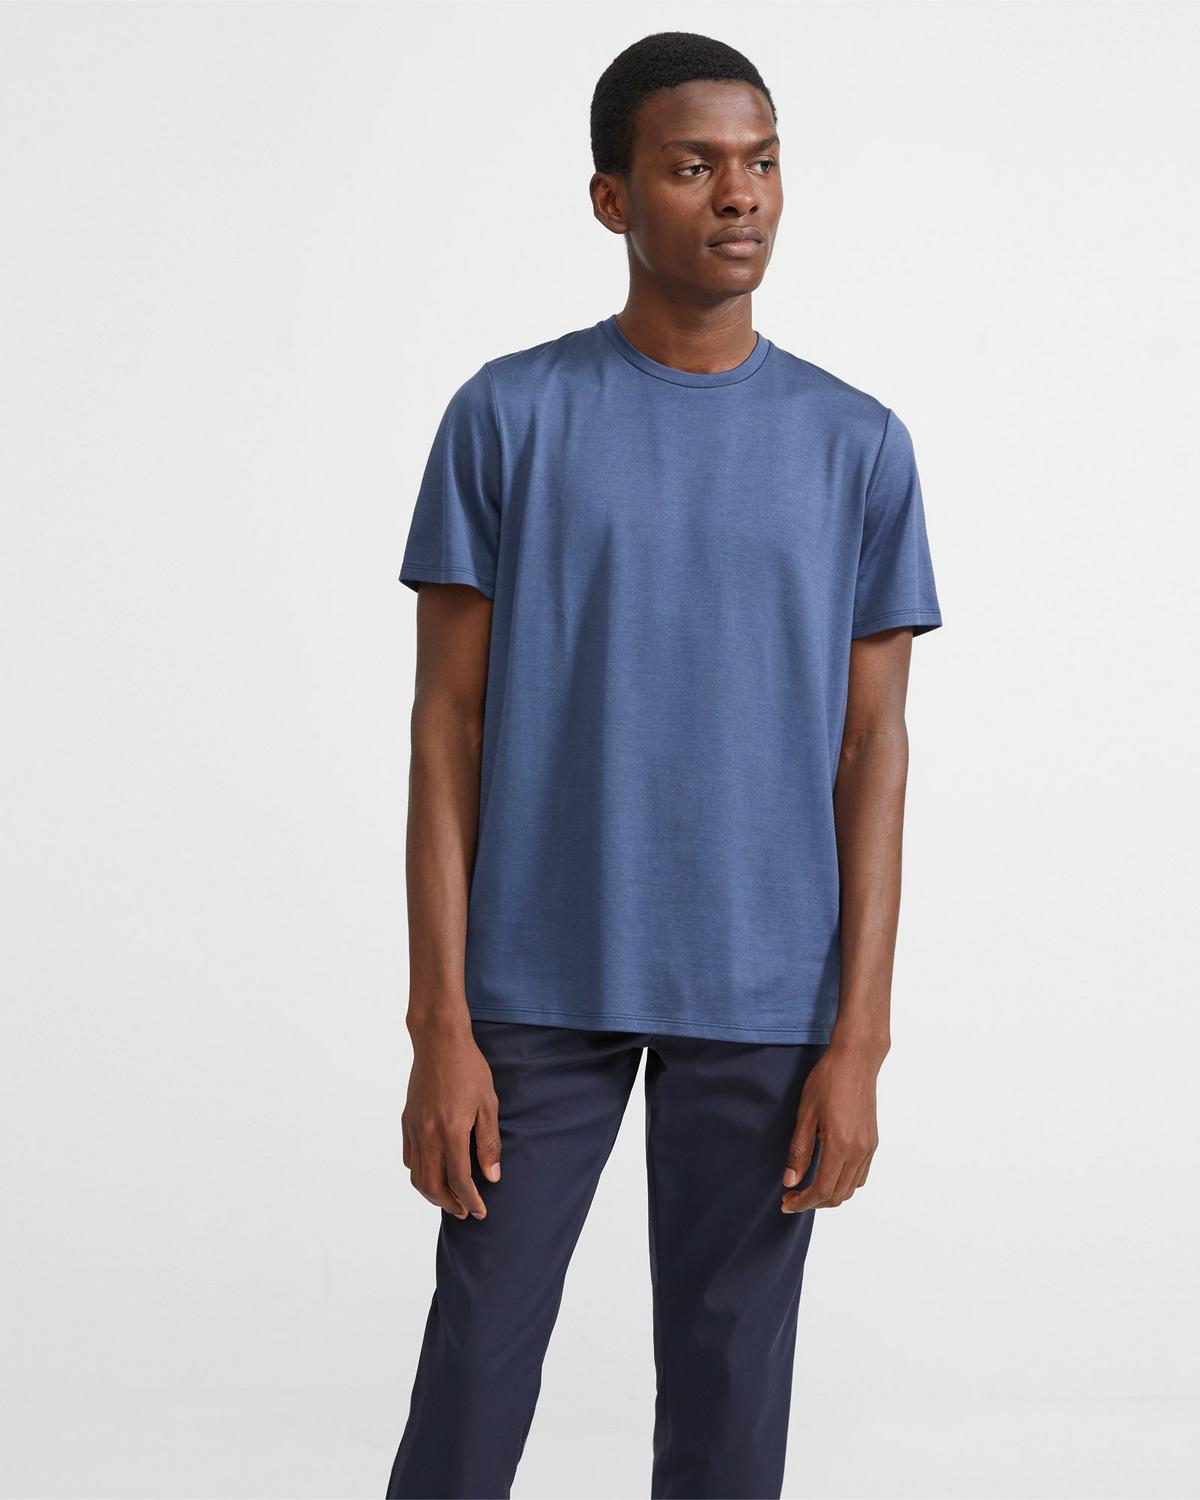 Clean Tee in Silk-Cotton